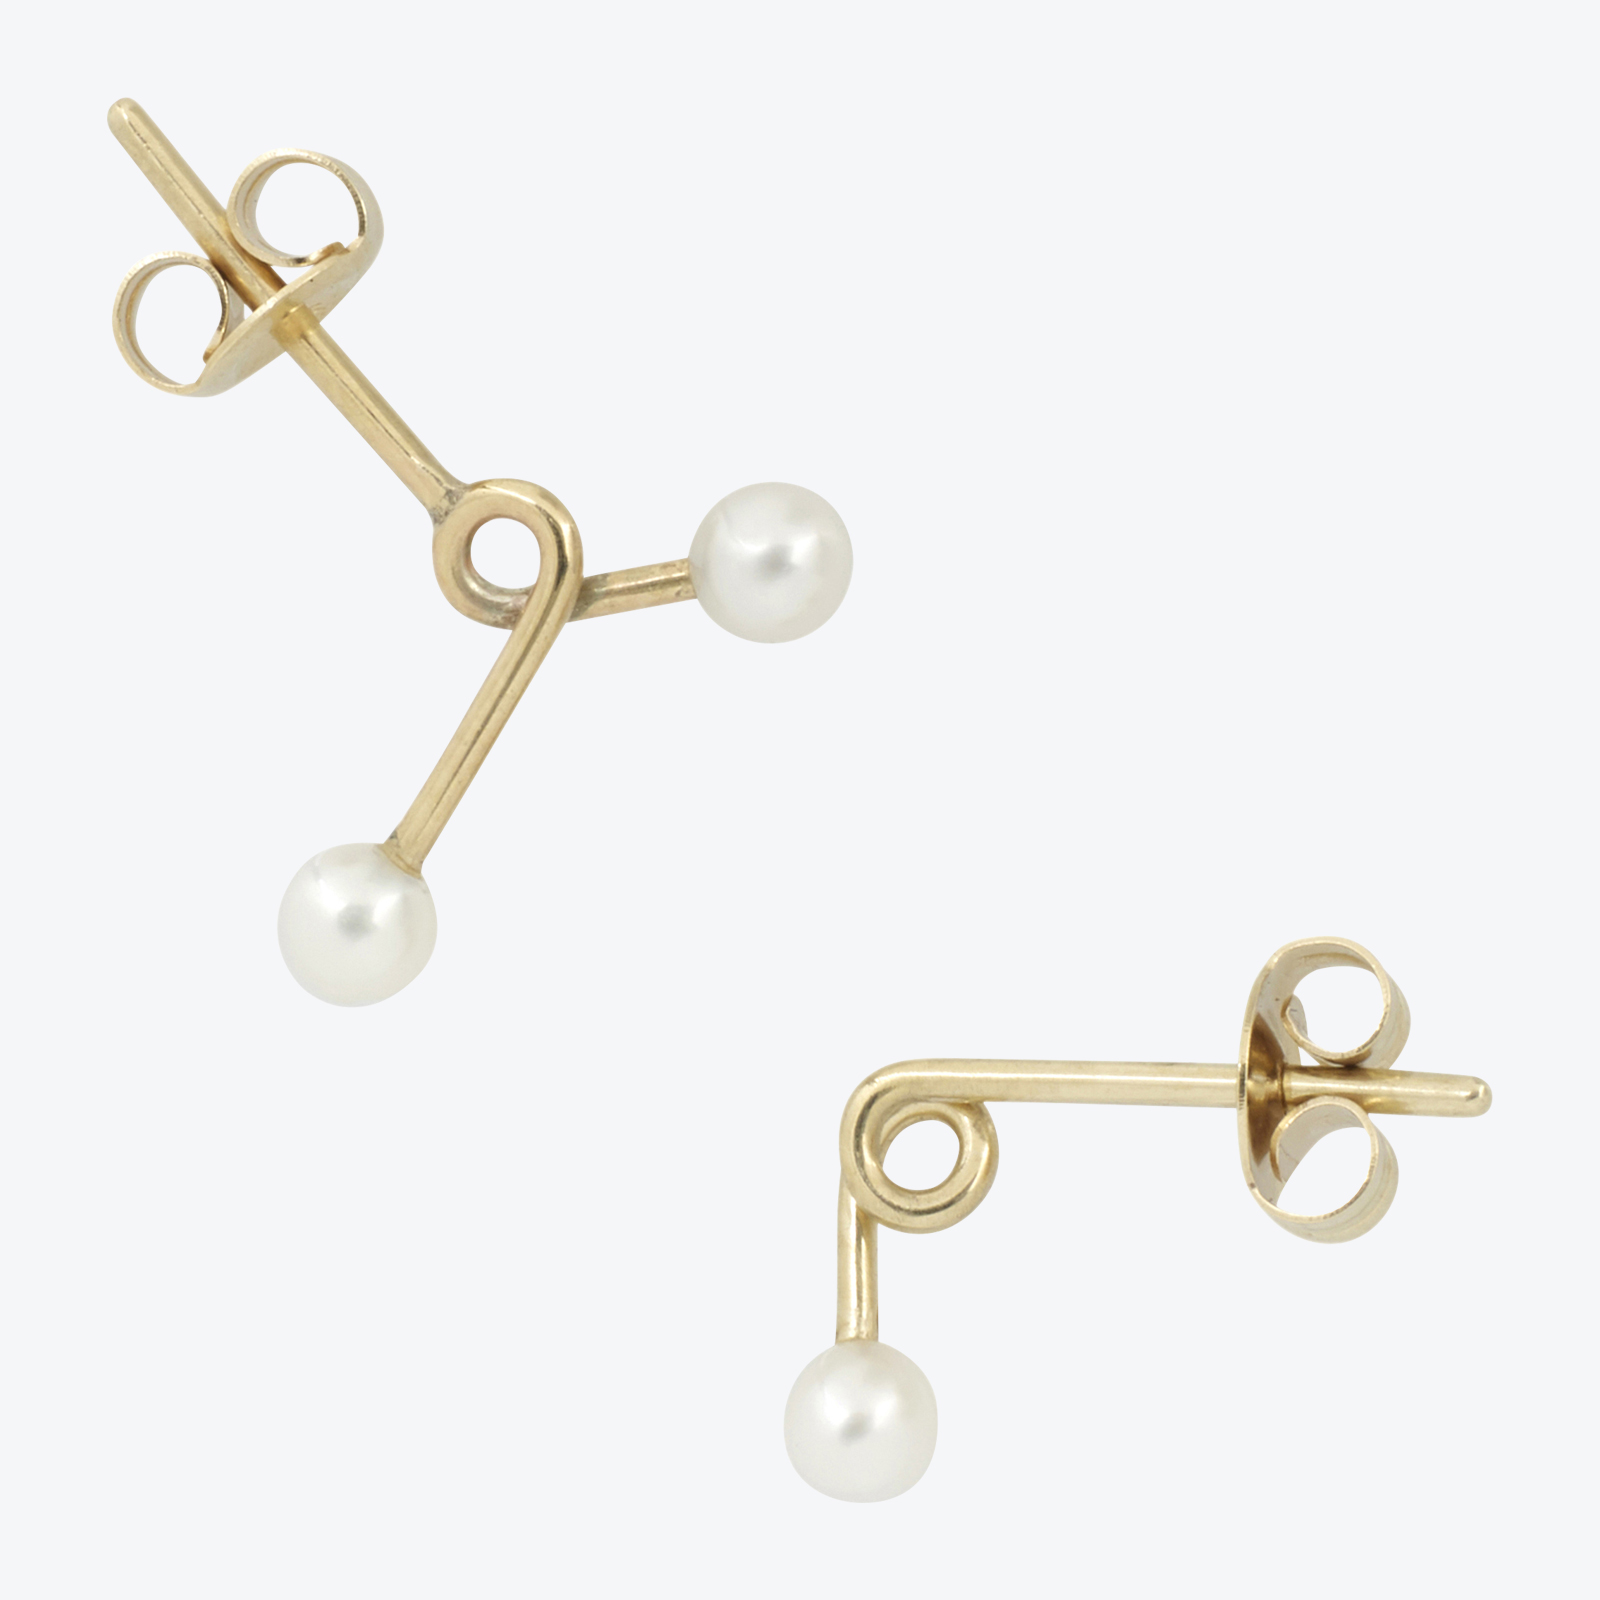 Twist Pearl Studs In 9ct Yellow Gold With Freshwater Pearls By Pip Stent.jpg